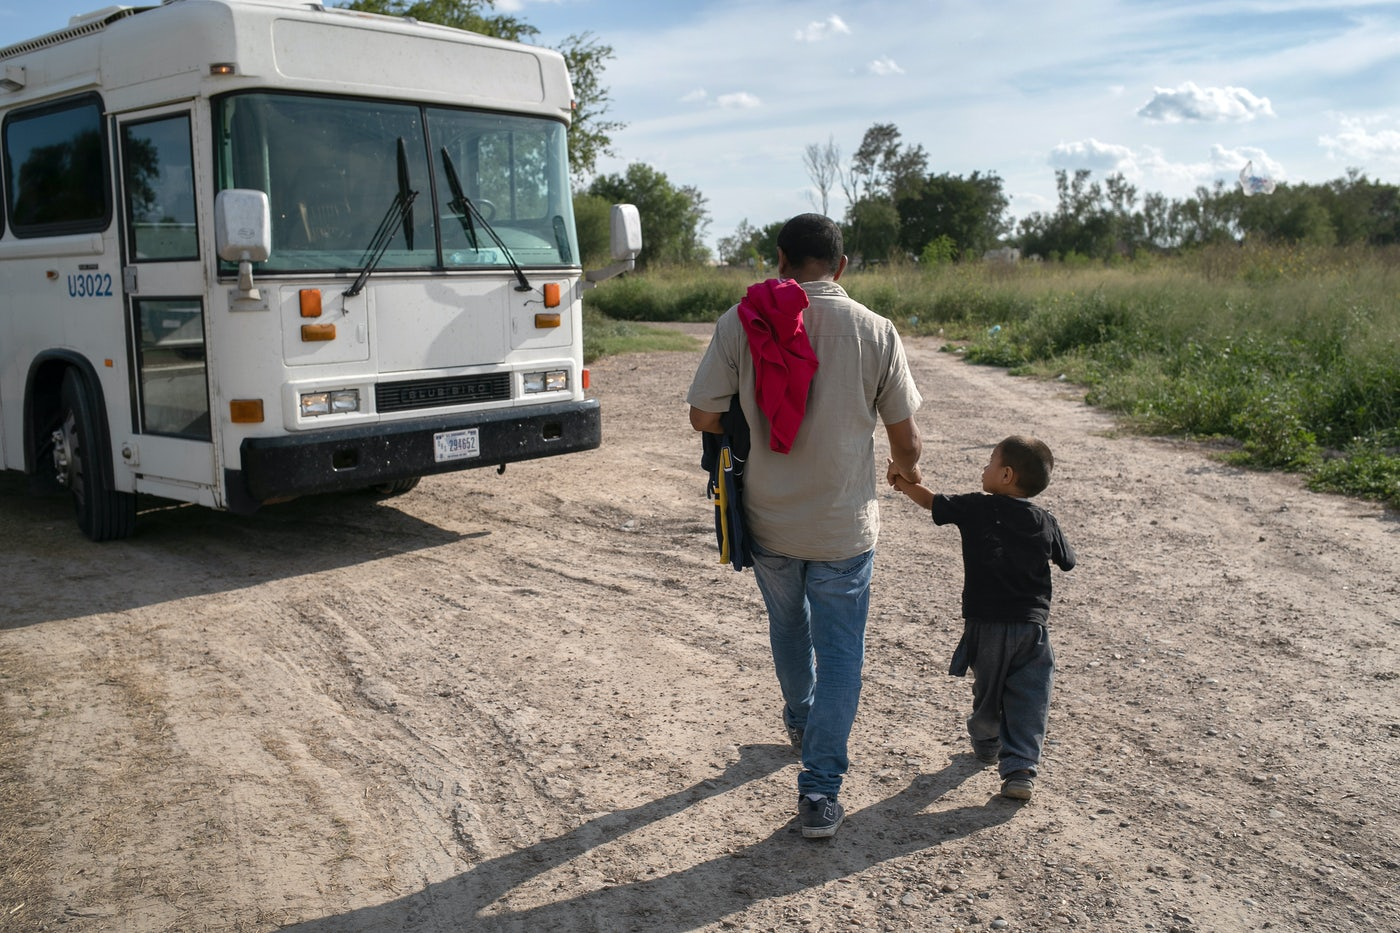 A 3 year old unaccompanied minor from Honduras waits to be bussed to a U.S. Border Patrol facility in Texas.